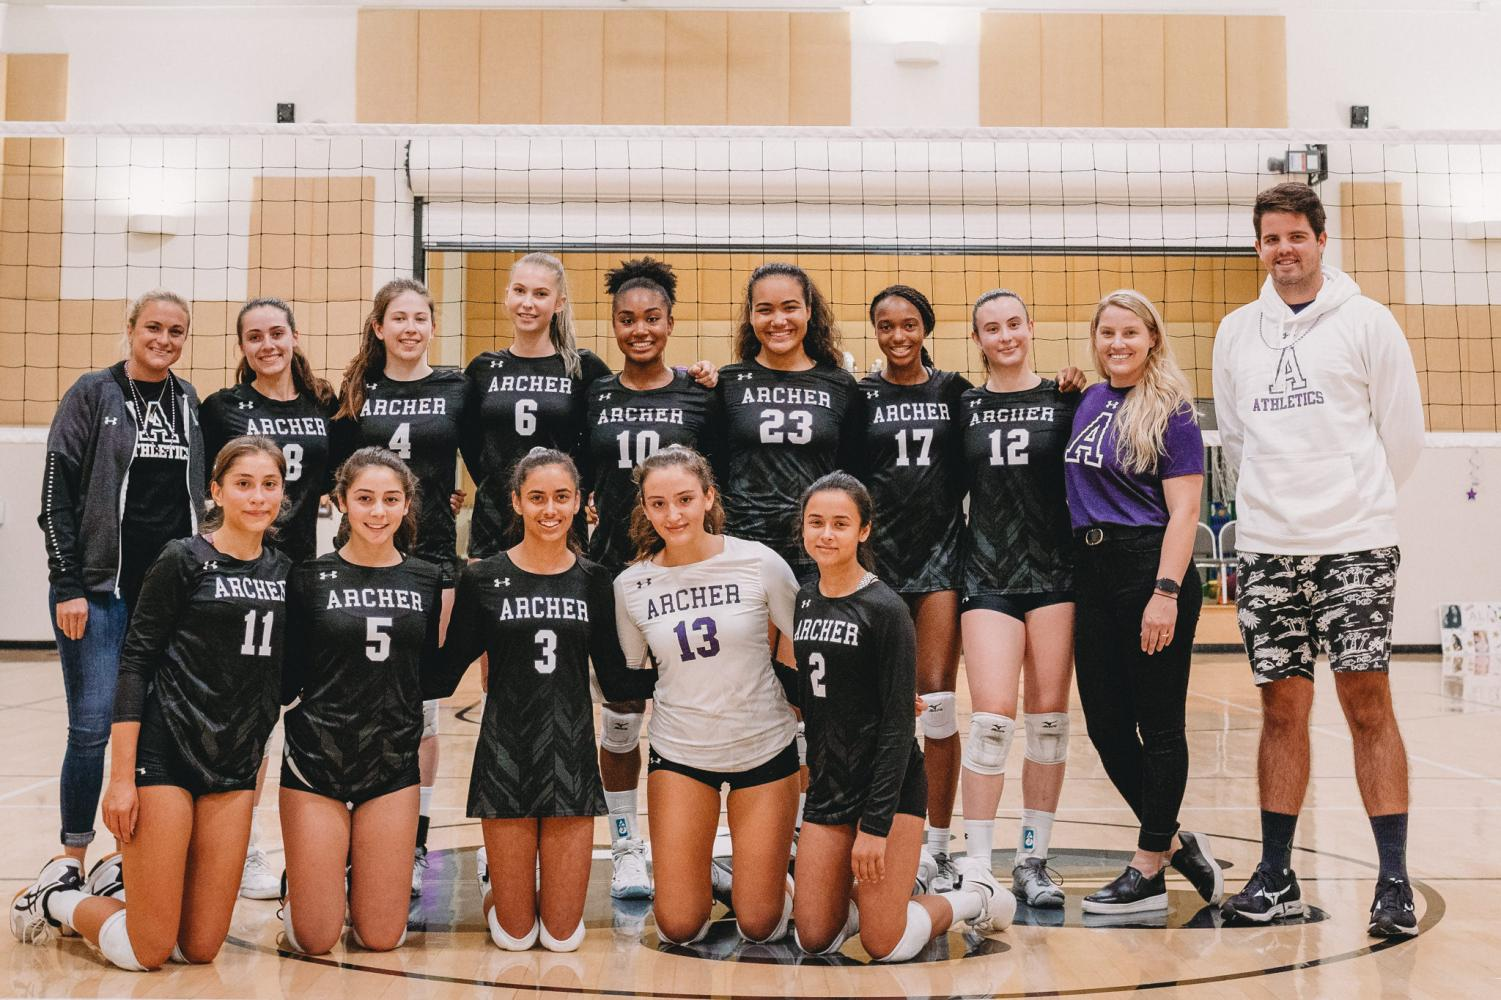 The+varsity+volleyball+team+poses+for+a+group+shot+after+a+victory+against+the+Buckley+school+on+senior+night.+The+team+won+3-0.+